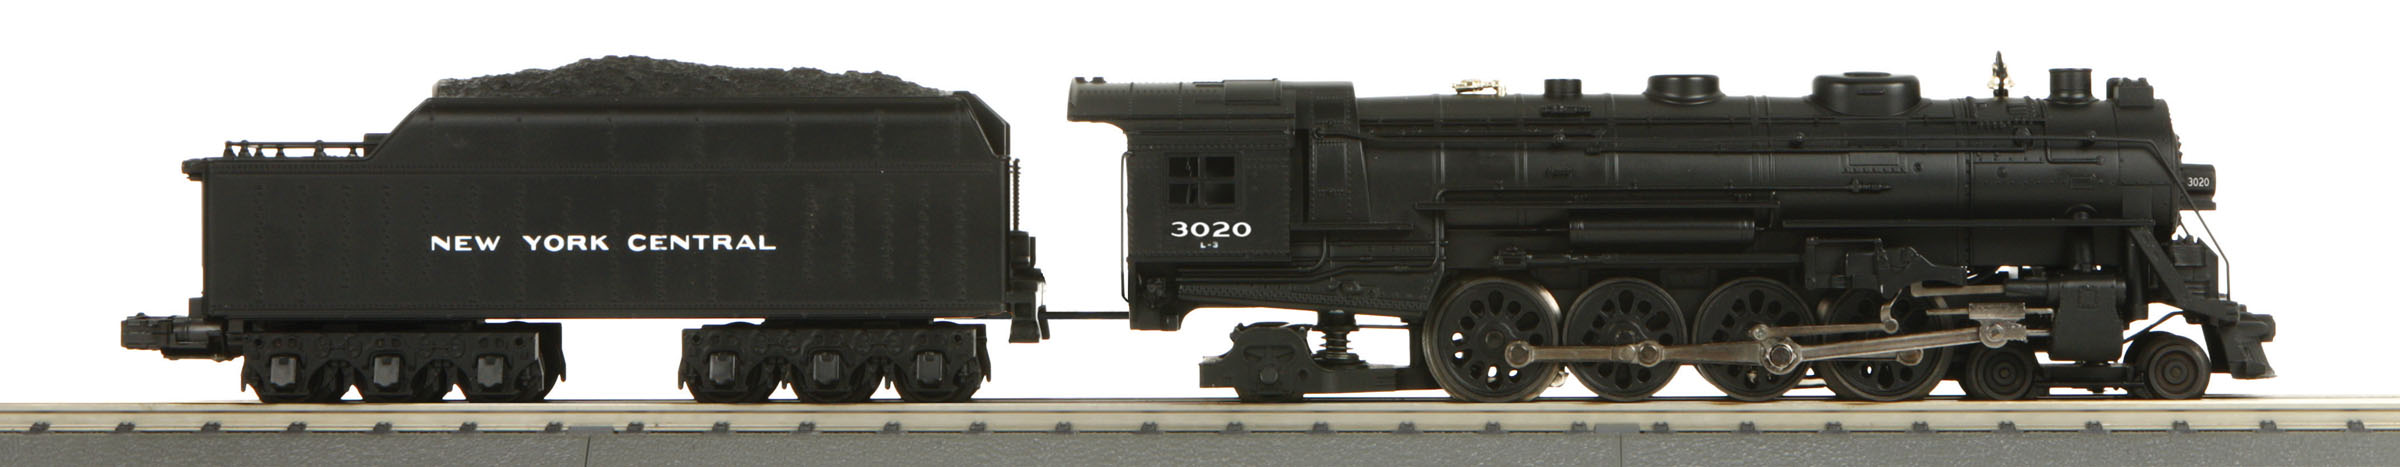 30 1652 1 railking steam locomotive mth electric trains  at fashall.co